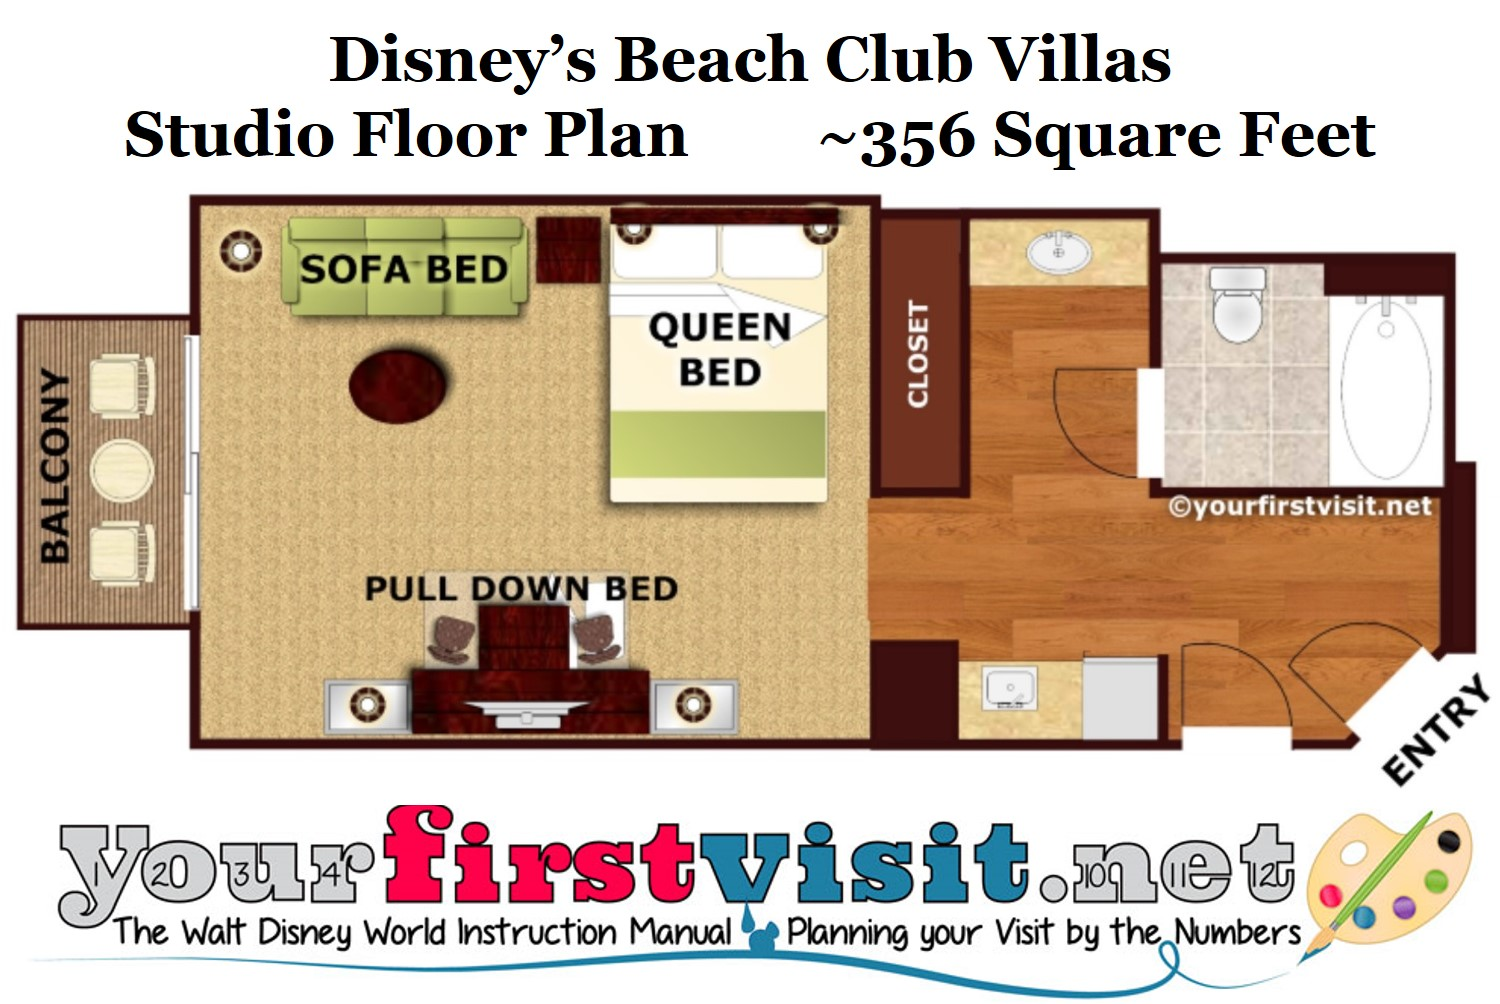 disneys-beach-club-villas-renovated-studio-floor-plan-from-yourfirstvisit-net